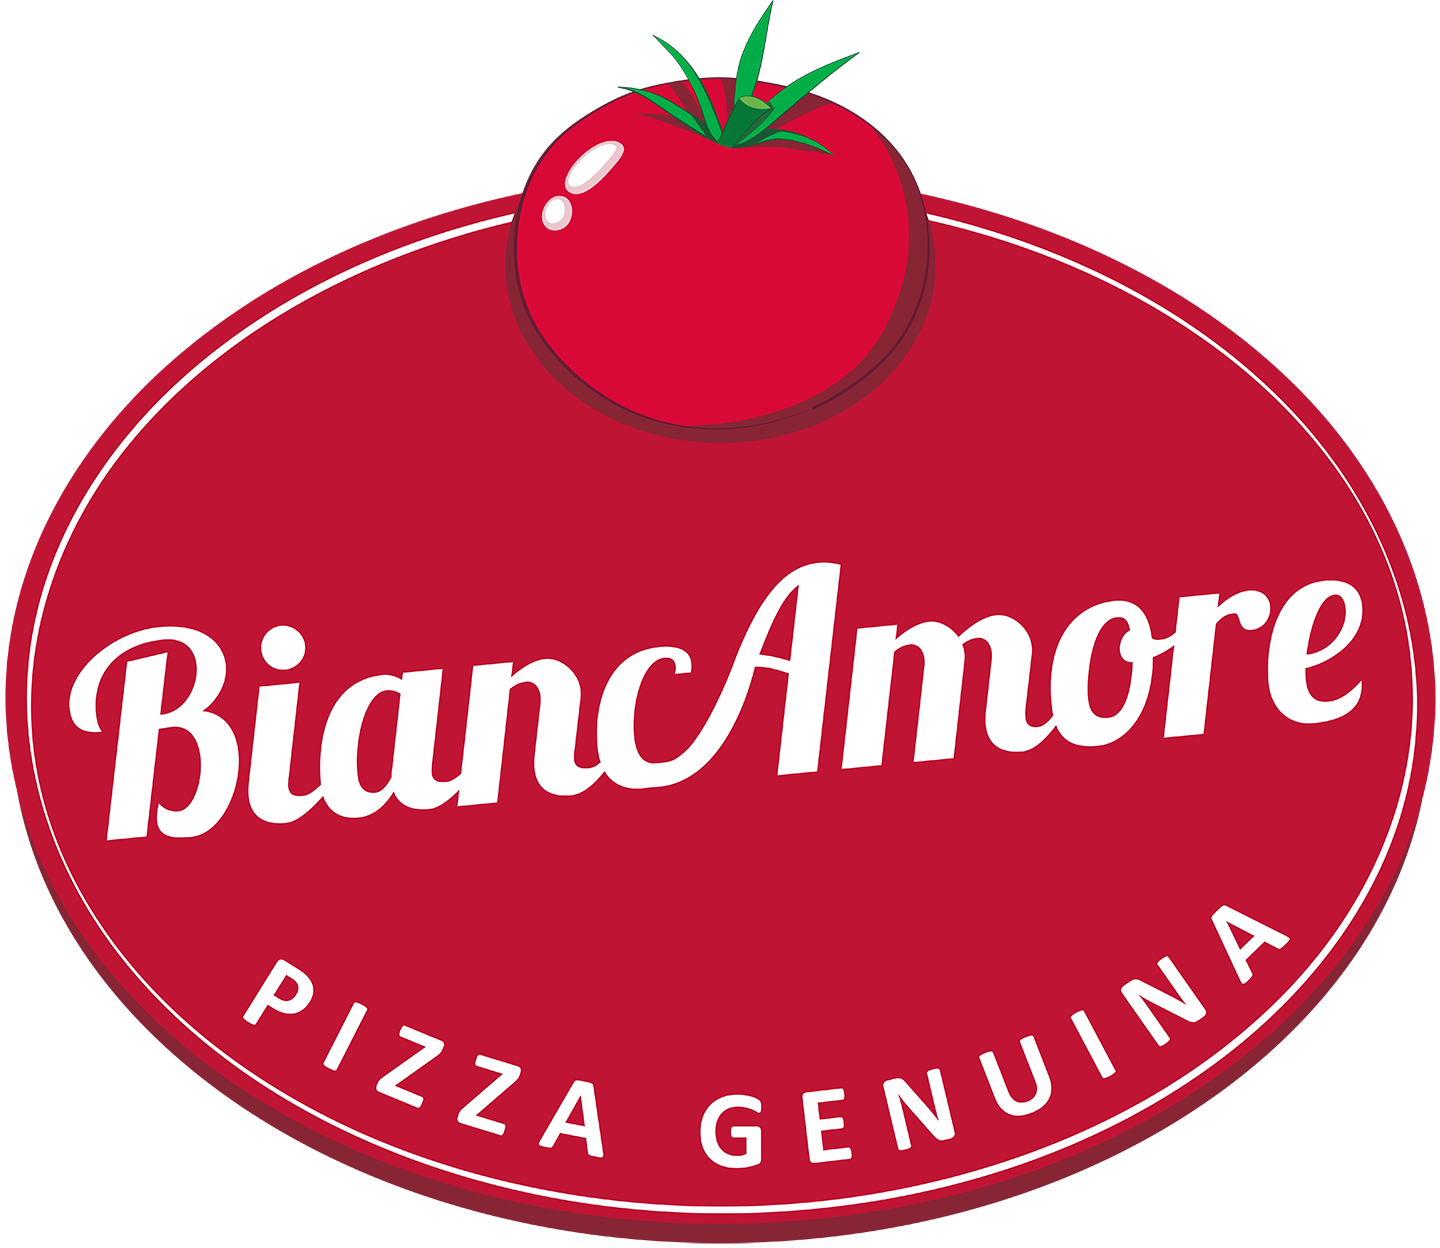 Pizza Biancamore